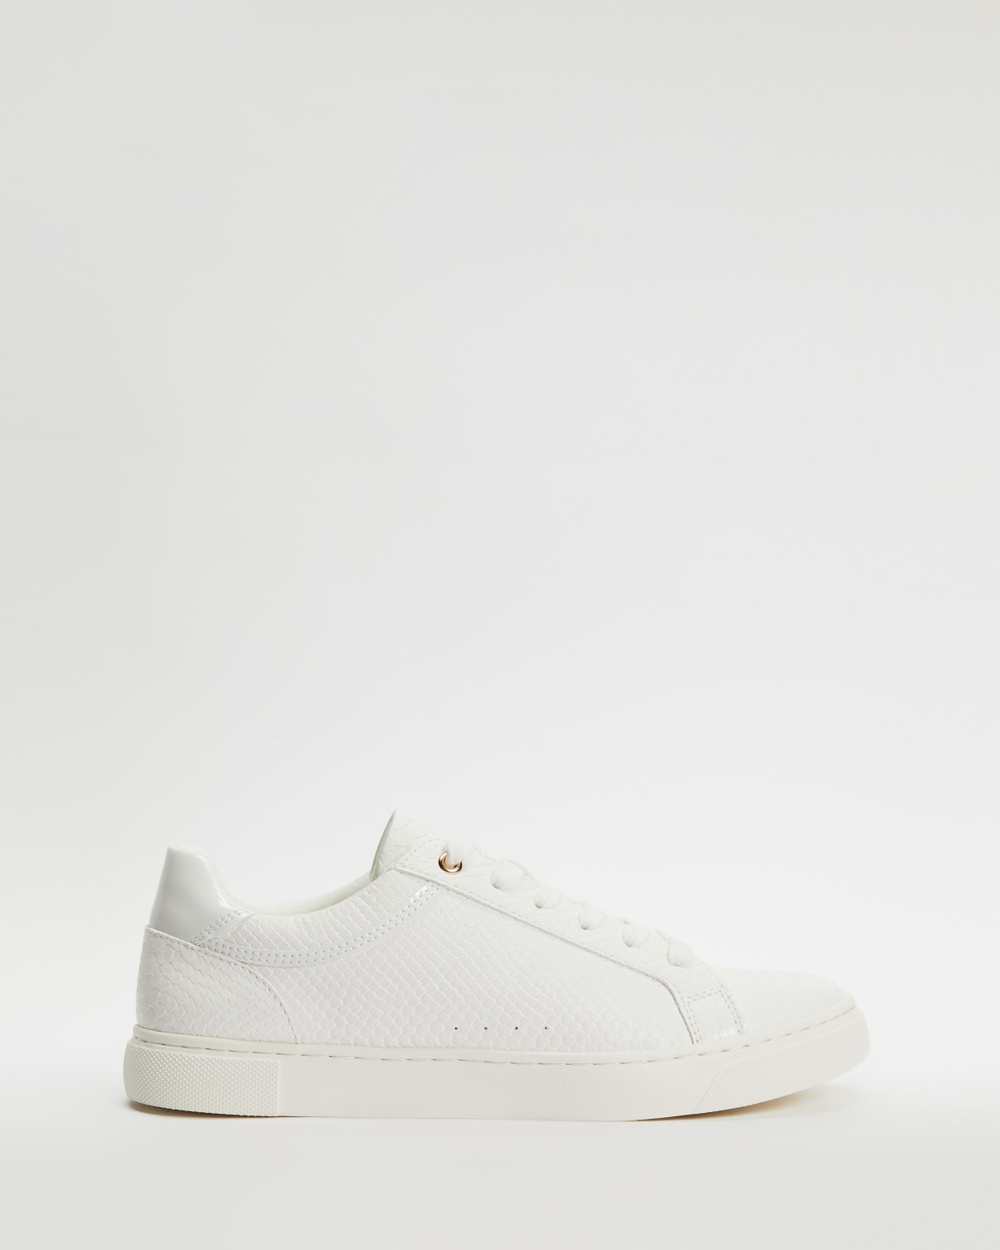 ALDO Gweraclya Lace Up Sneakers 100 White